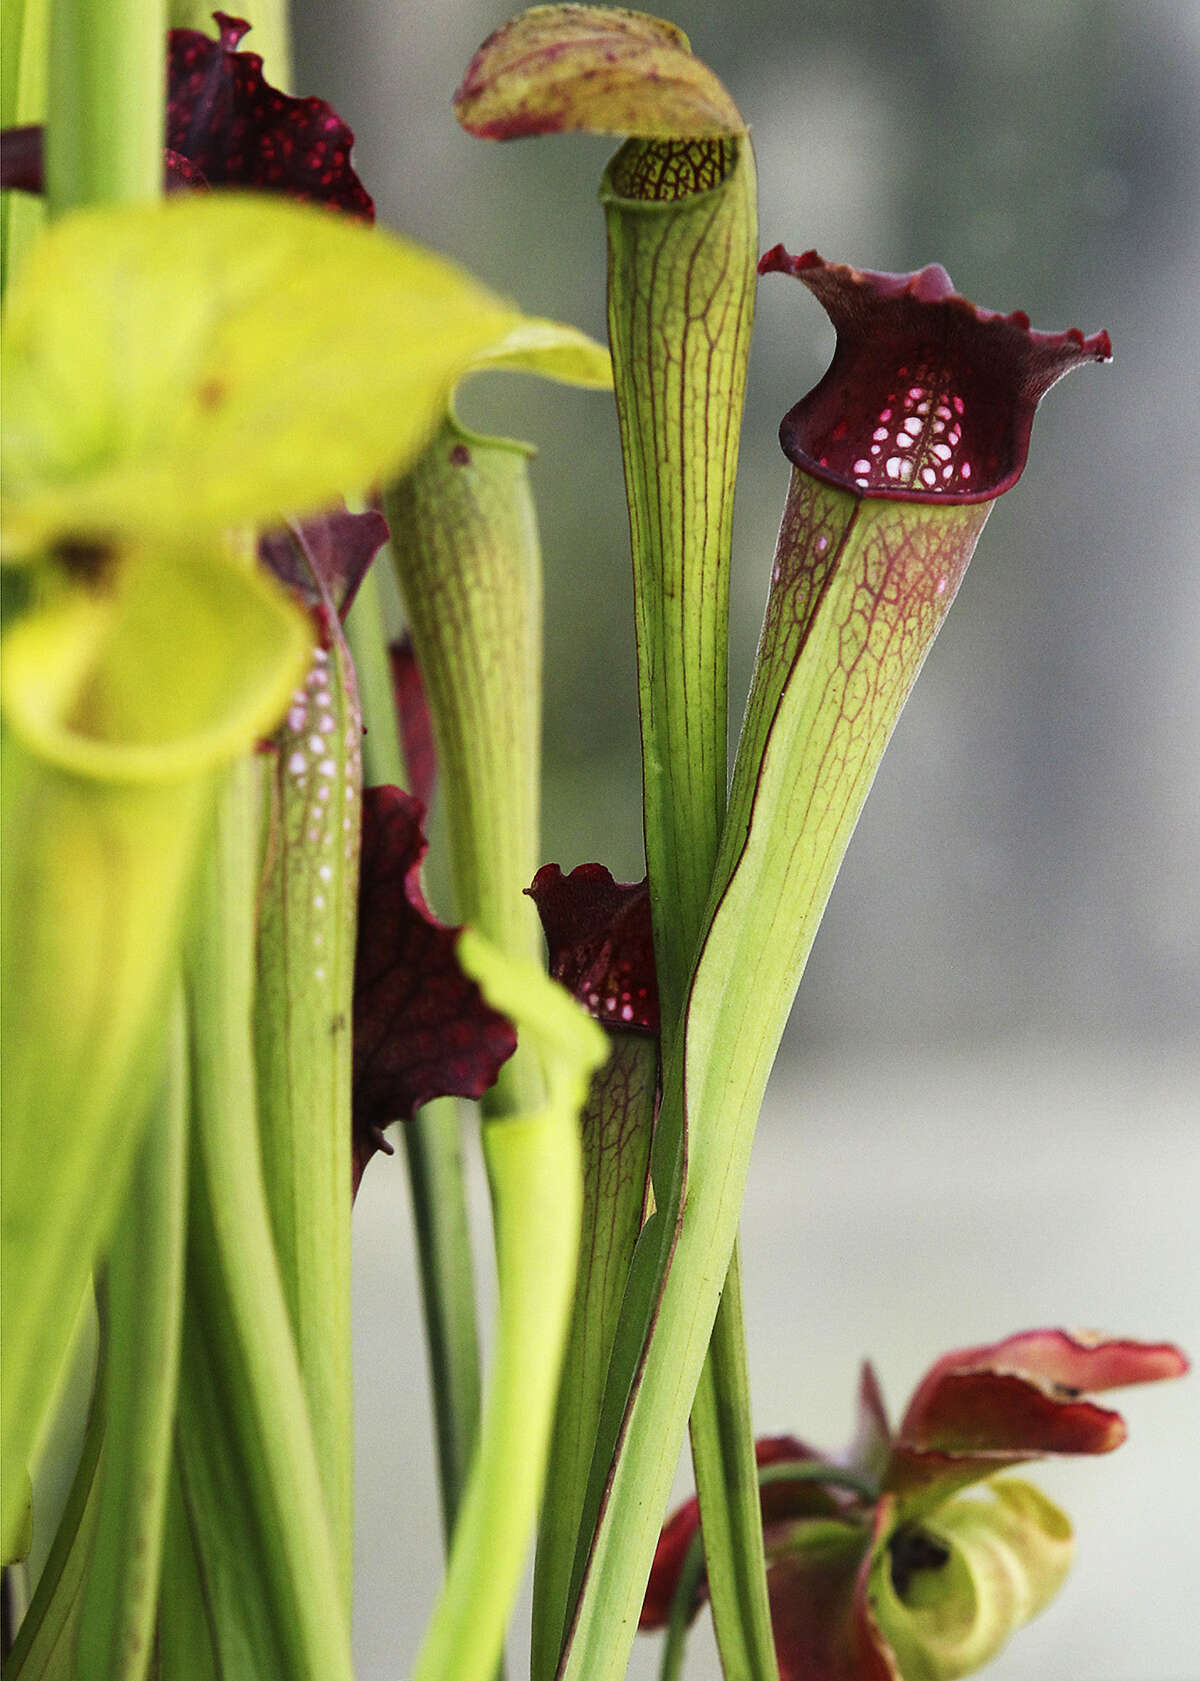 Pitcher plants are part of a new exhibit at the San Antonio Botanical Garden.